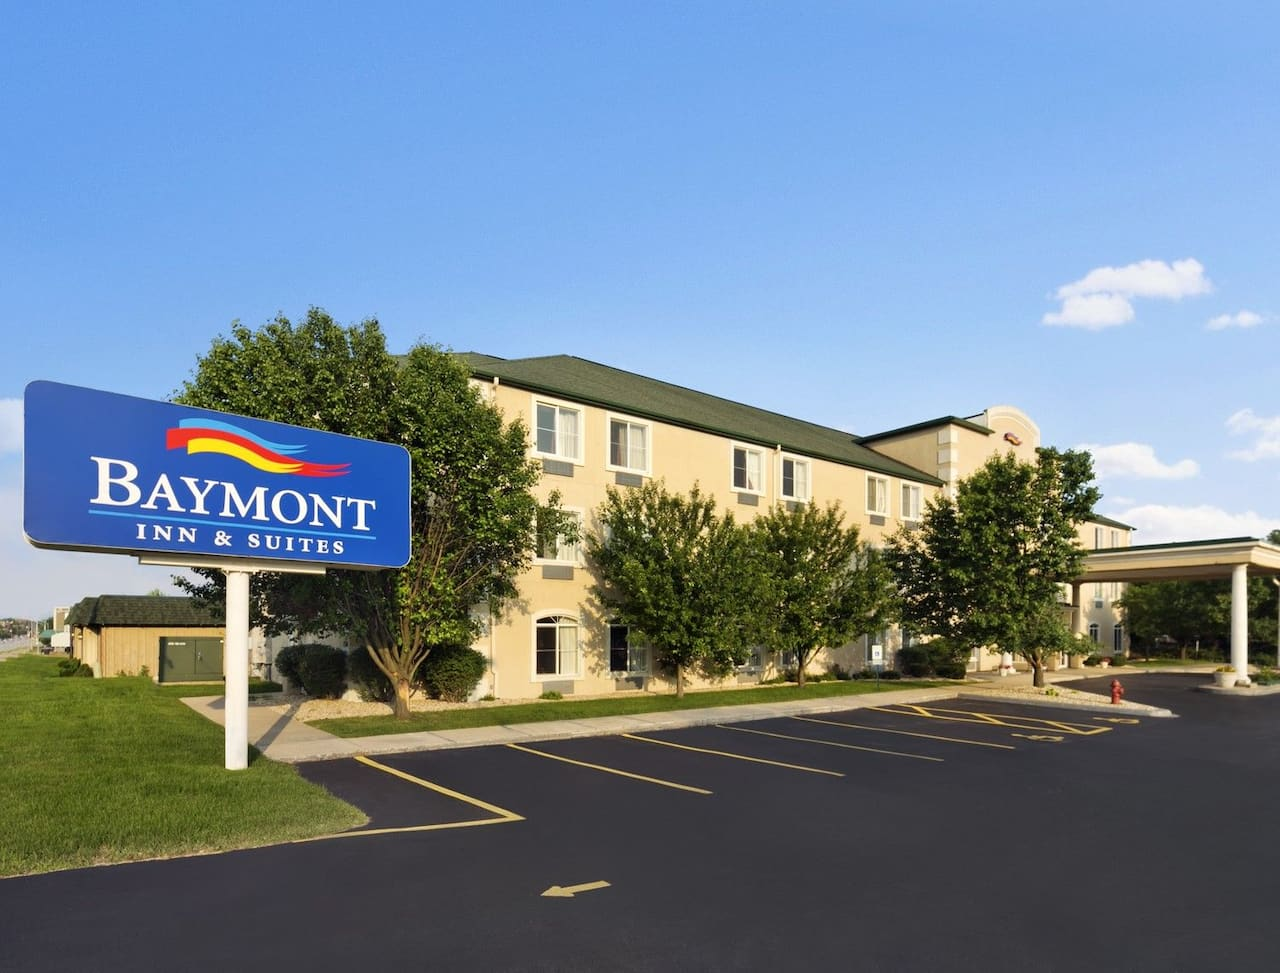 Baymont Inn & Suites DeKalb in Dekalb, Illinois